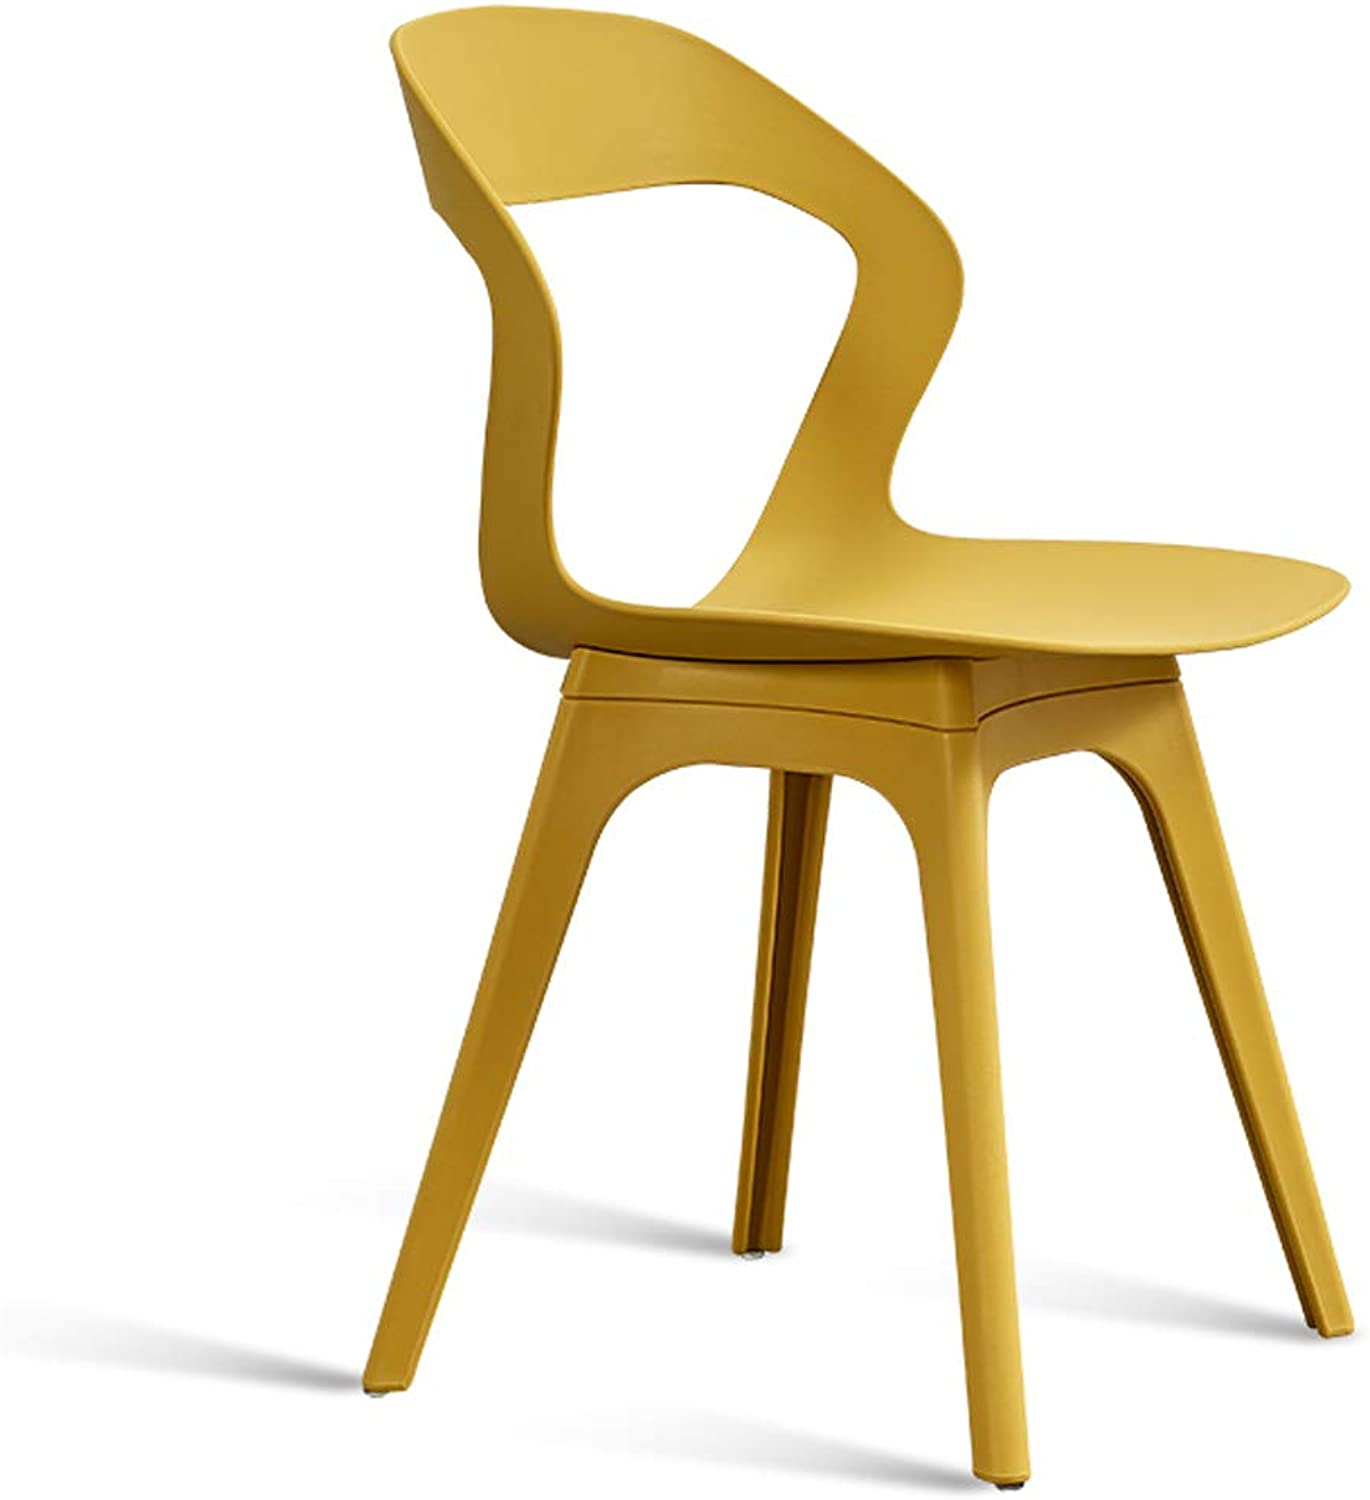 LRW Nordic Leisure Chair Restaurant, Modern Minimalist Chair, Yellow Fashion Chair, Backrest Stool